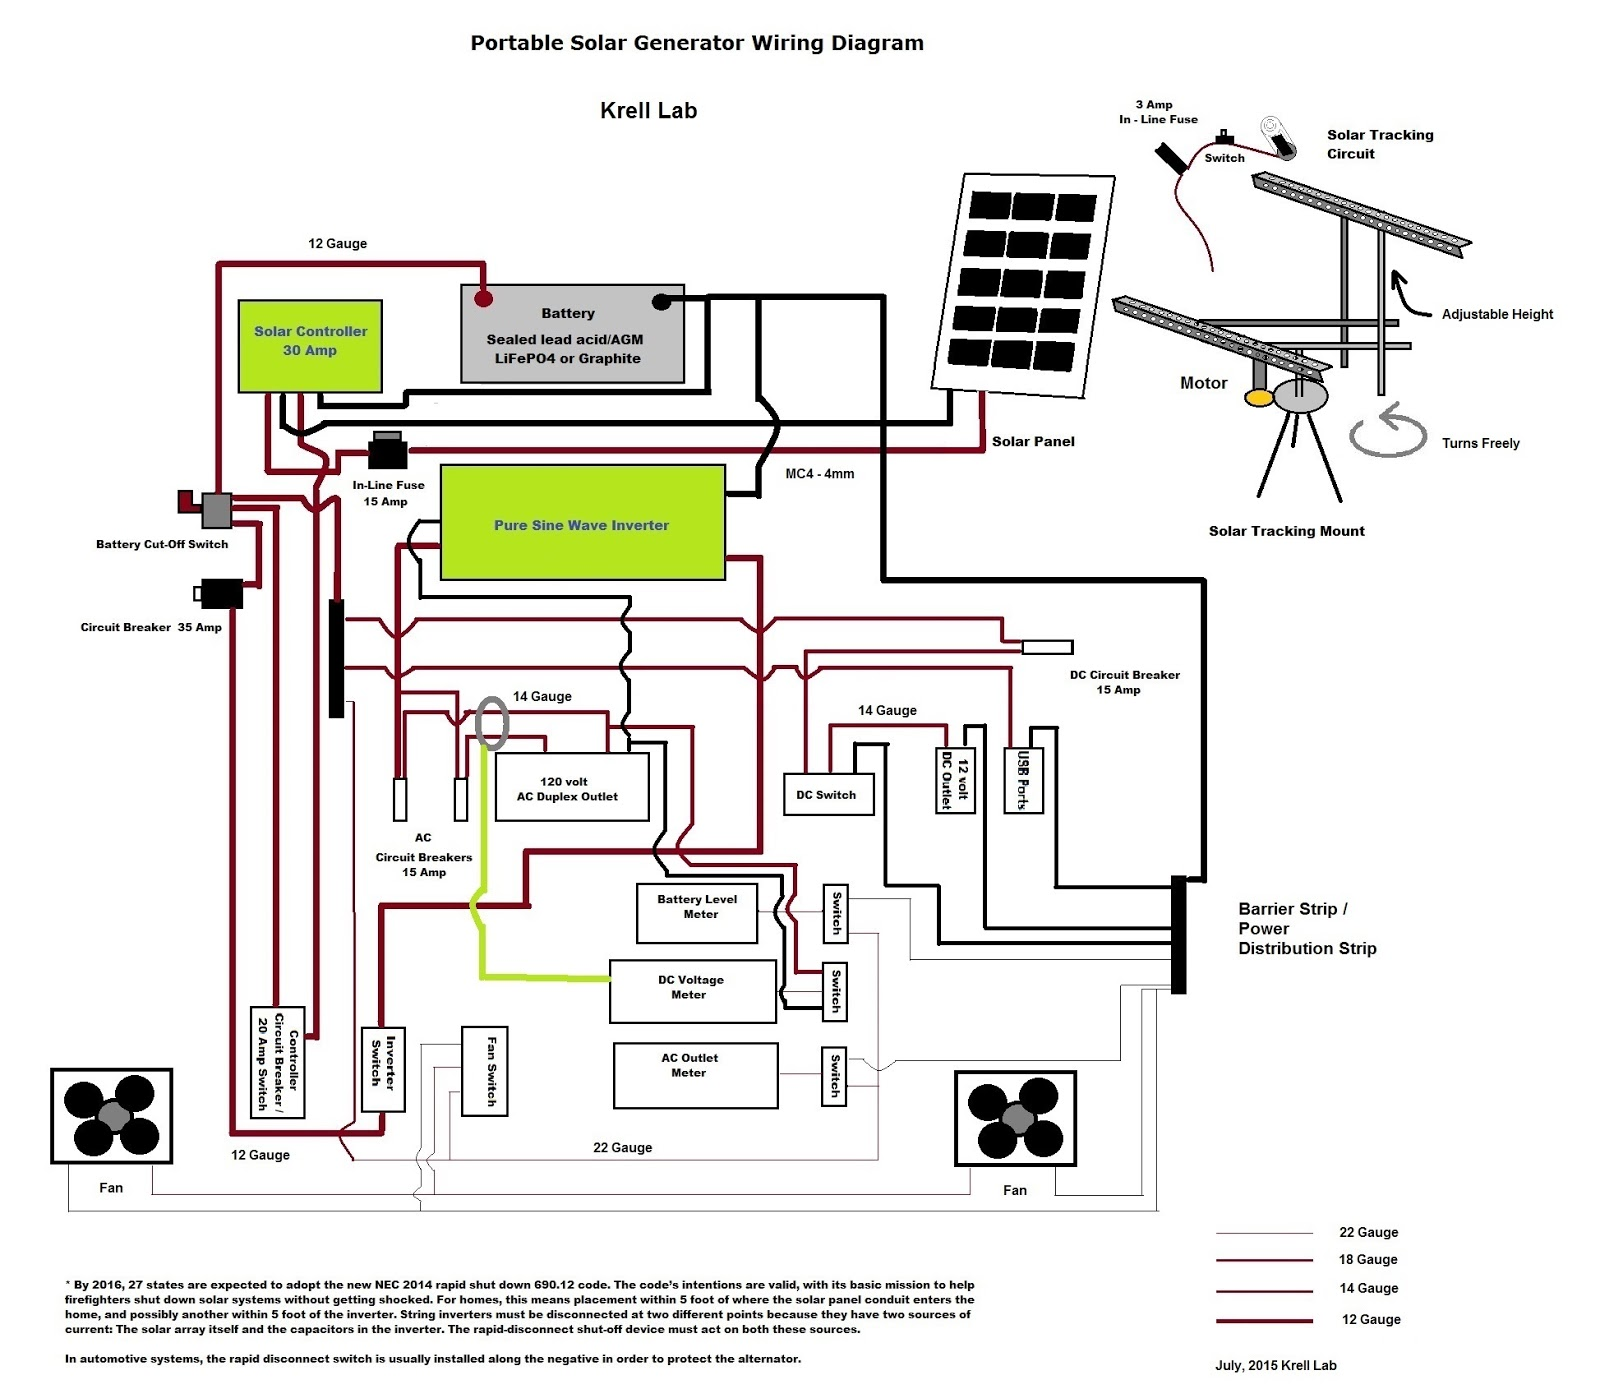 three line solar diagram pourbaix nickel niagara wiring schematic free engine image for